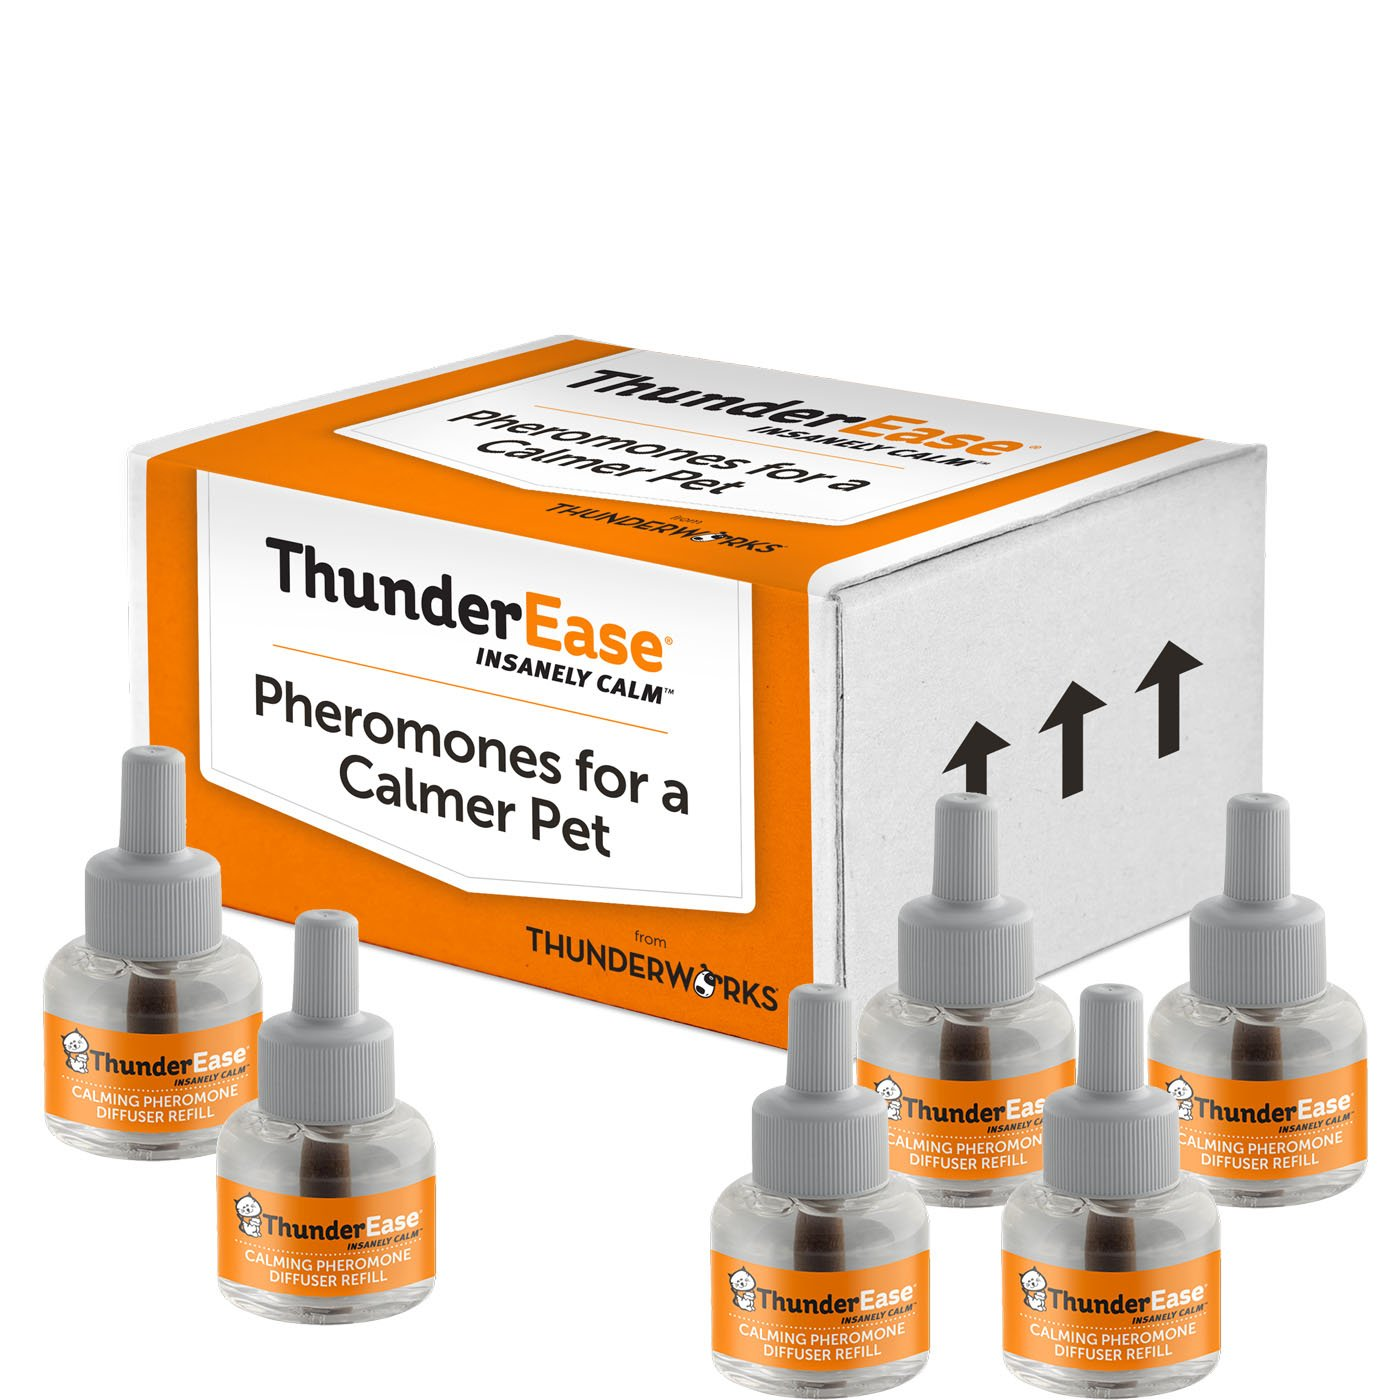 ThunderEase Cat Calming Pheromone Diffuser Refill | Powered by FELIWAY | Reduce Scratching, Urine Spraying, Marking, and Anxiety (180 Day Supply) by ThunderEase